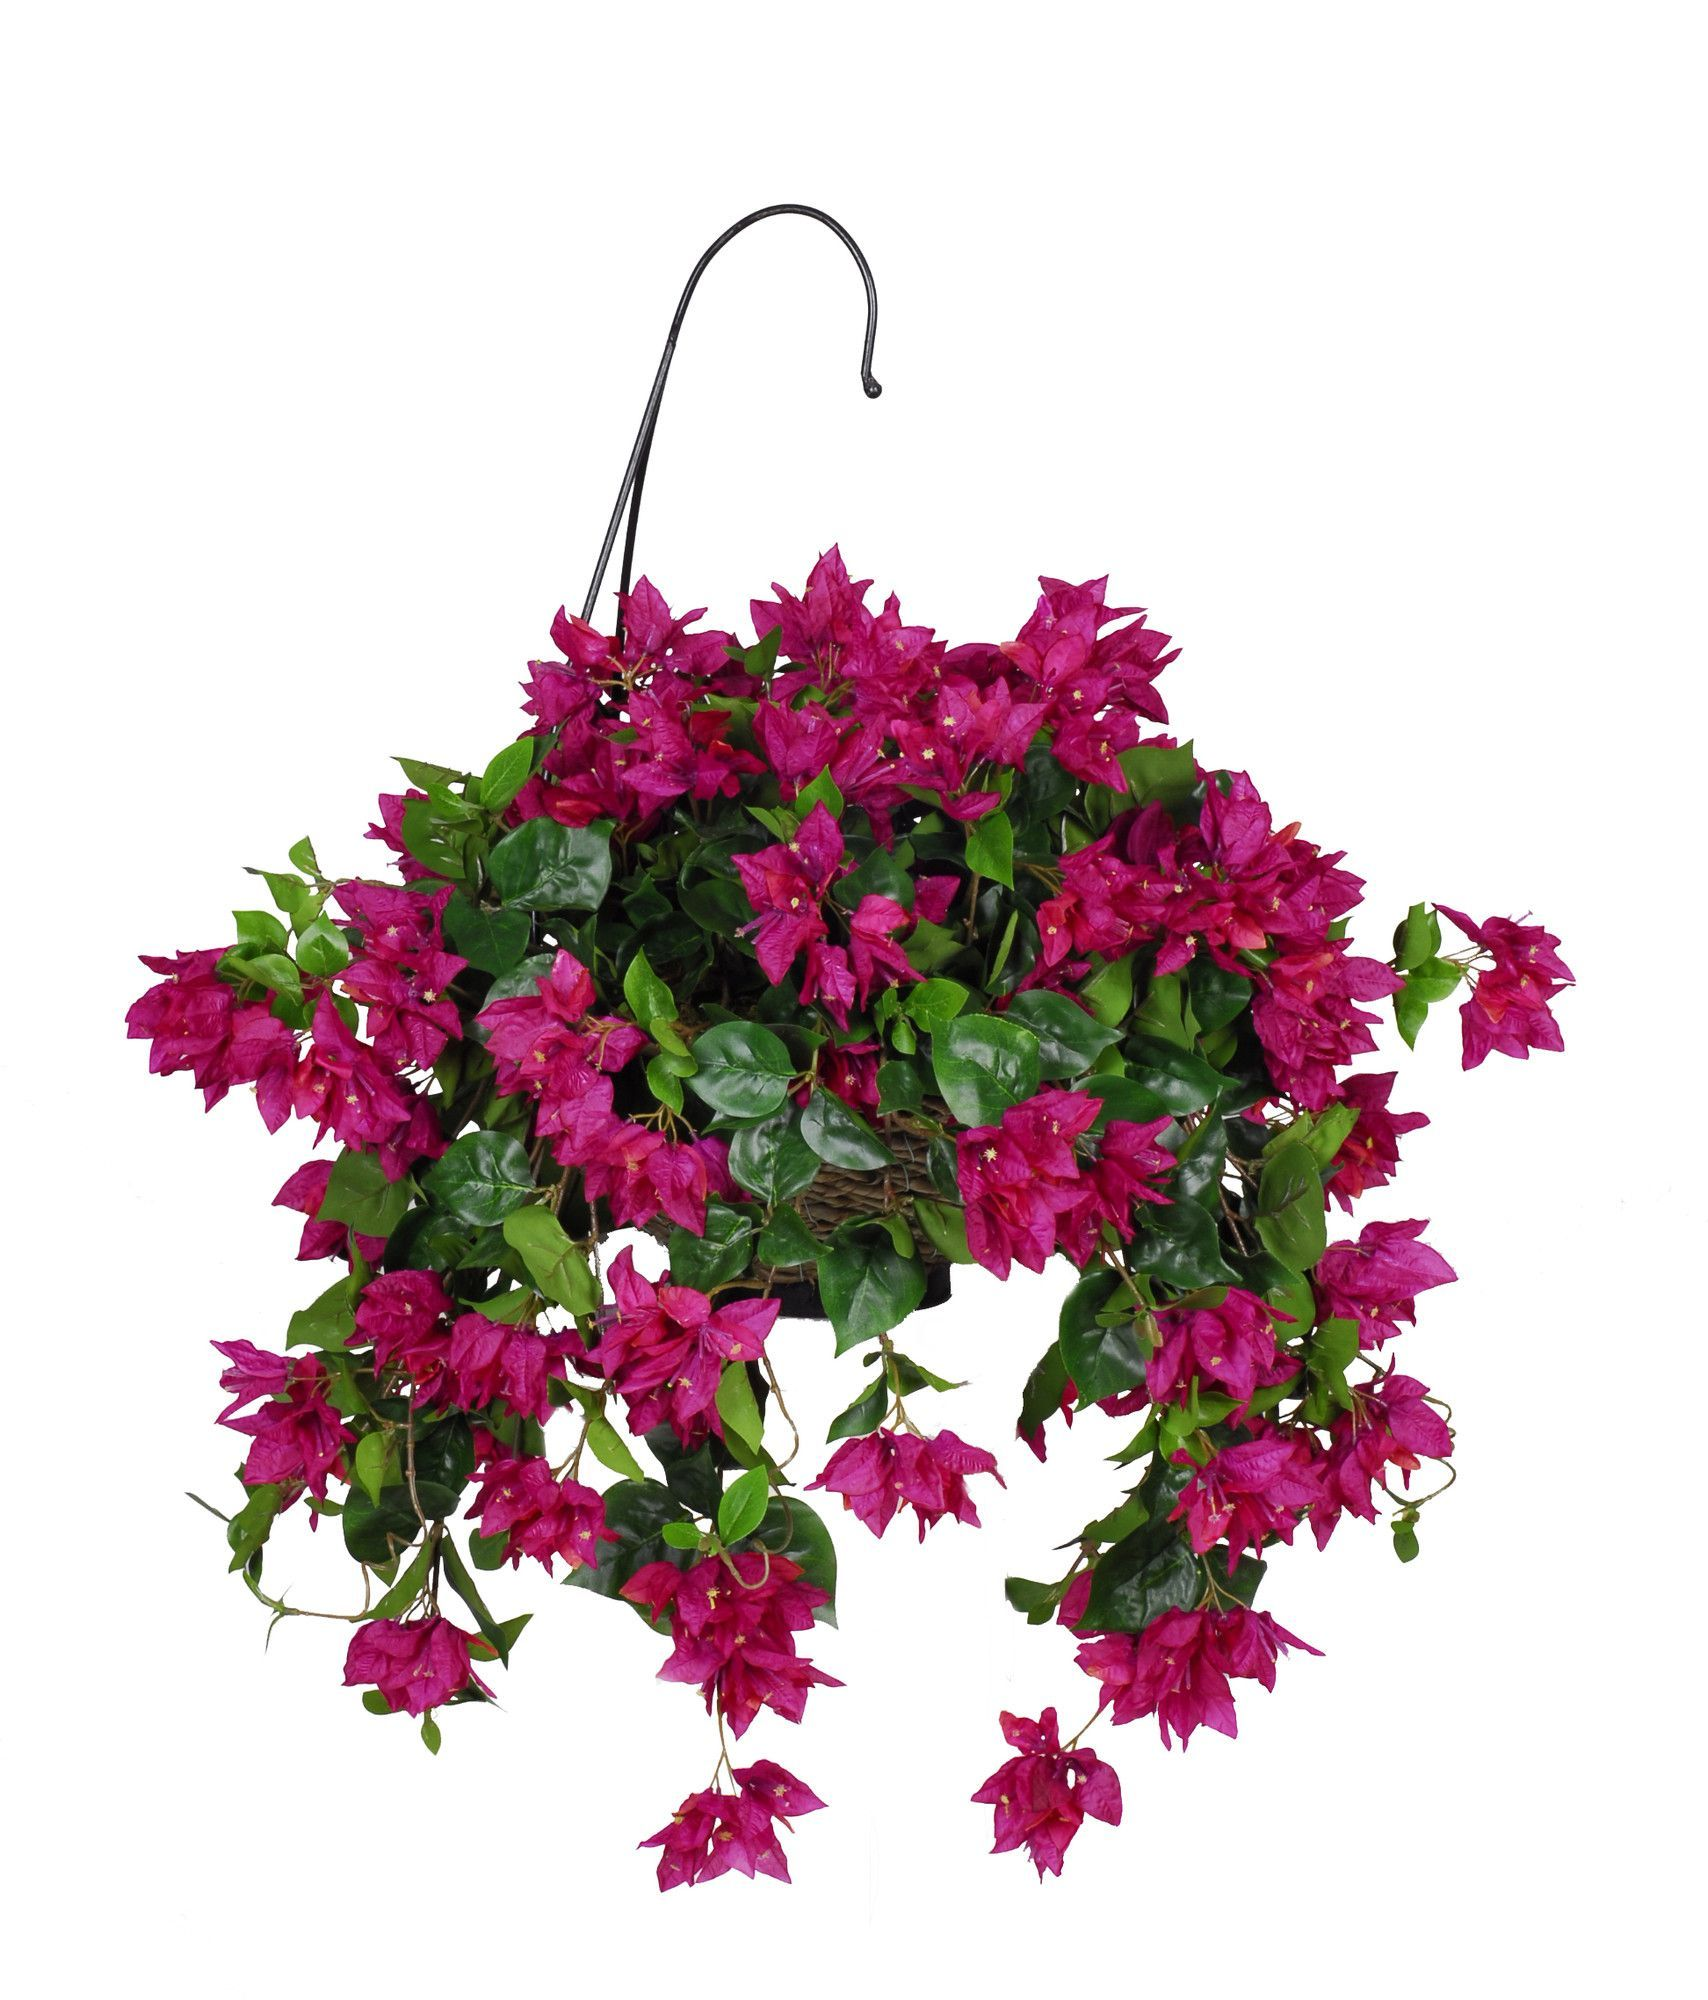 Flower Tower Hanging Baskets : Bougainvillea hanging plant in basket yard